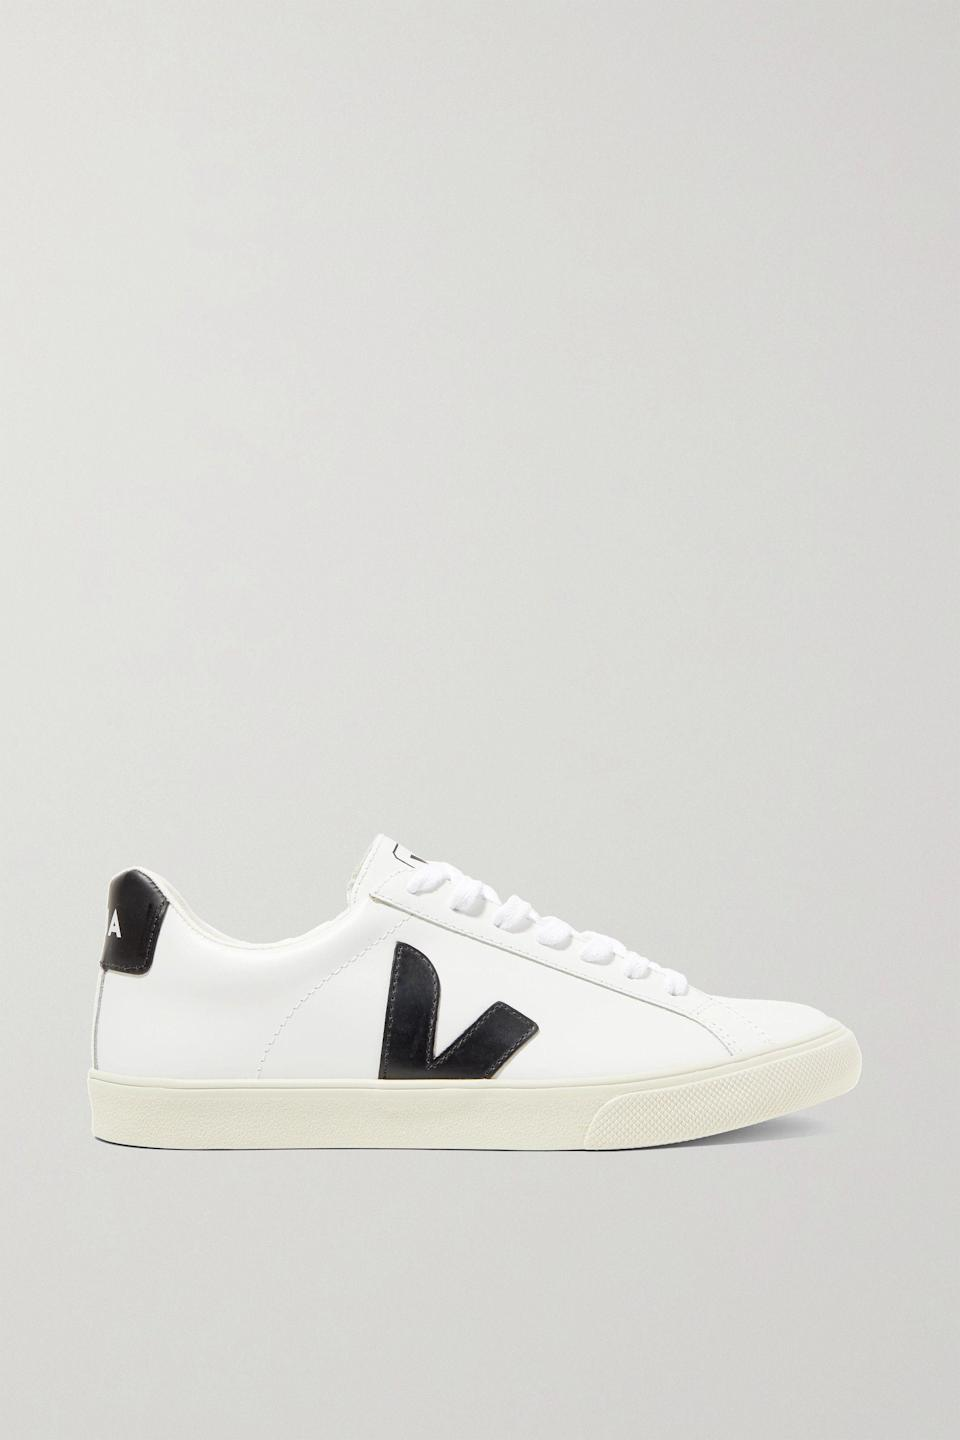 """<p><strong>Veja</strong></p><p>net-a-porter.com</p><p><strong>$120.00</strong></p><p><a href=""""https://go.redirectingat.com?id=74968X1596630&url=https%3A%2F%2Fwww.net-a-porter.com%2Fen-us%2Fshop%2Fproduct%2Fveja%2Fshoes%2Flow-top%2F-net-sustain-esplar-rubber-trimmed-leather-sneakers%2F22831760542660440&sref=https%3A%2F%2Fwww.townandcountrymag.com%2Fstyle%2Ffashion-trends%2Fg36200206%2Fsummer-shoes%2F"""" rel=""""nofollow noopener"""" target=""""_blank"""" data-ylk=""""slk:Shop Now"""" class=""""link rapid-noclick-resp"""">Shop Now</a></p><p>The Duchess of Sussex has been seen sporting these do-it-all kicks numerous times. </p><p><strong>More: </strong><a href=""""https://www.townandcountrymag.com/society/tradition/g27244254/meghan-markle-favorite-shoes/"""" rel=""""nofollow noopener"""" target=""""_blank"""" data-ylk=""""slk:Meghan Markle's Favorite Shoe Brands"""" class=""""link rapid-noclick-resp"""">Meghan Markle's Favorite Shoe Brands</a></p>"""